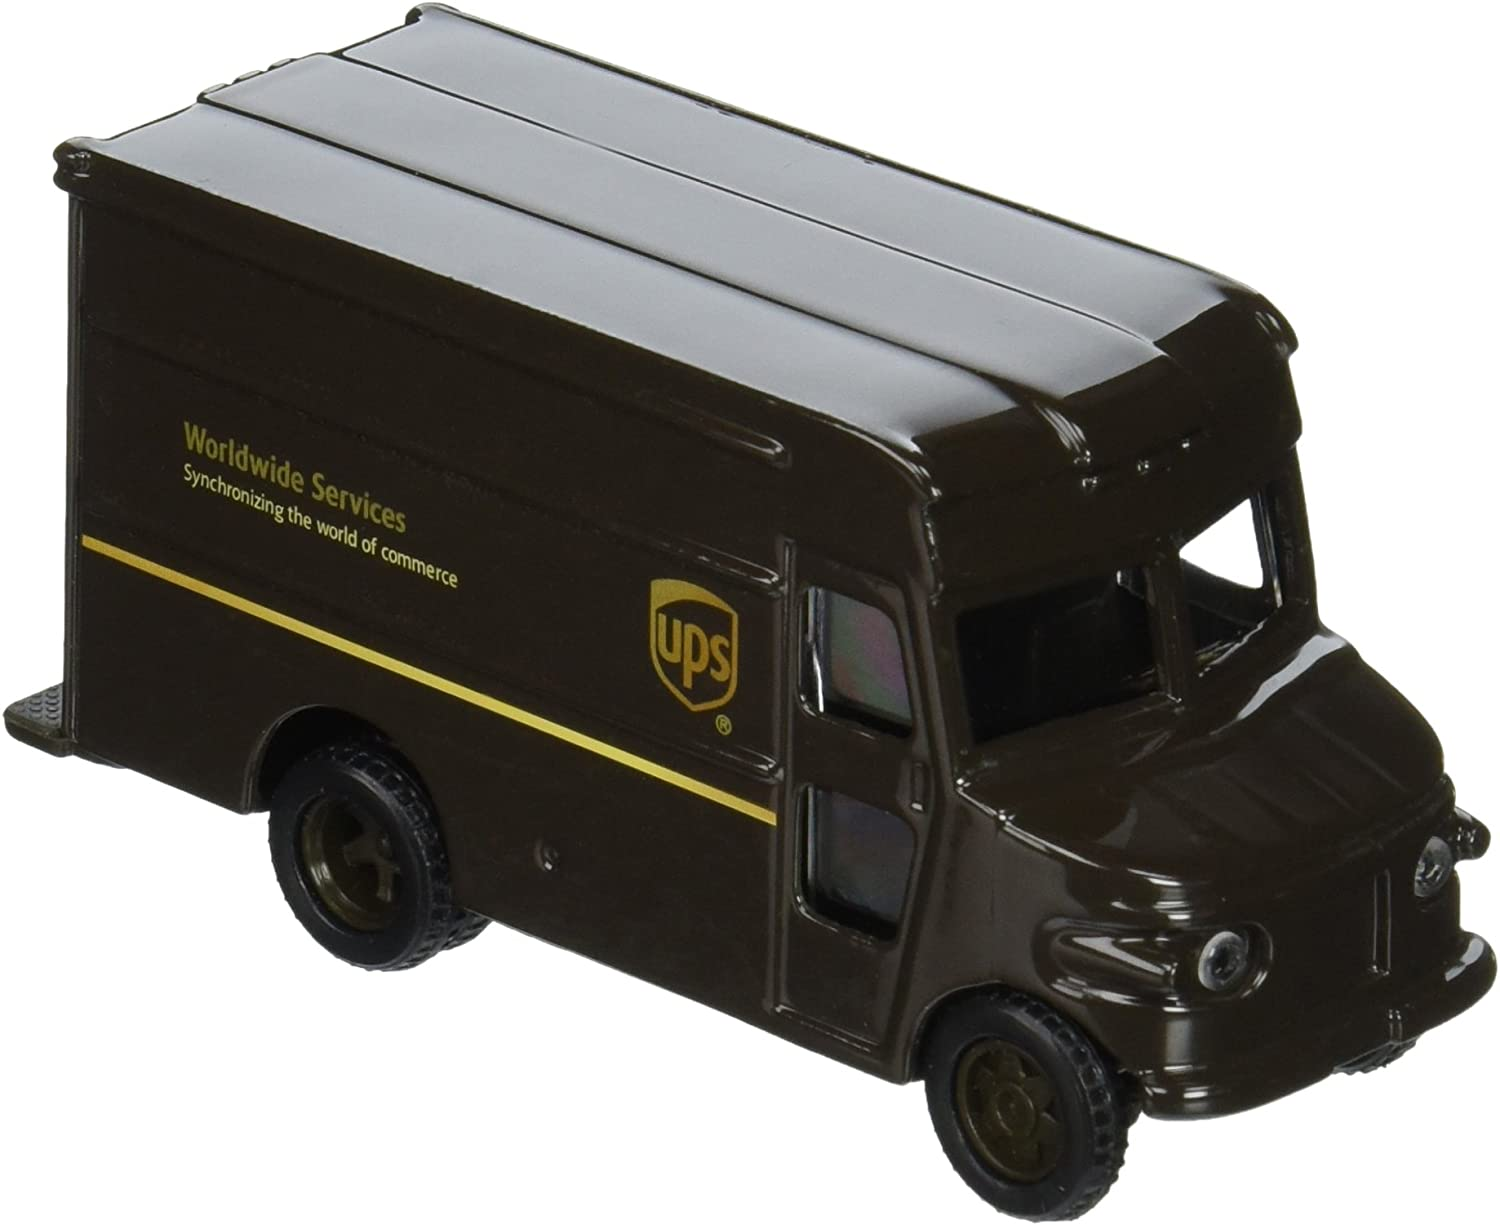 Ups United Parcel Service 4  P600 Package Car Delivery Truck